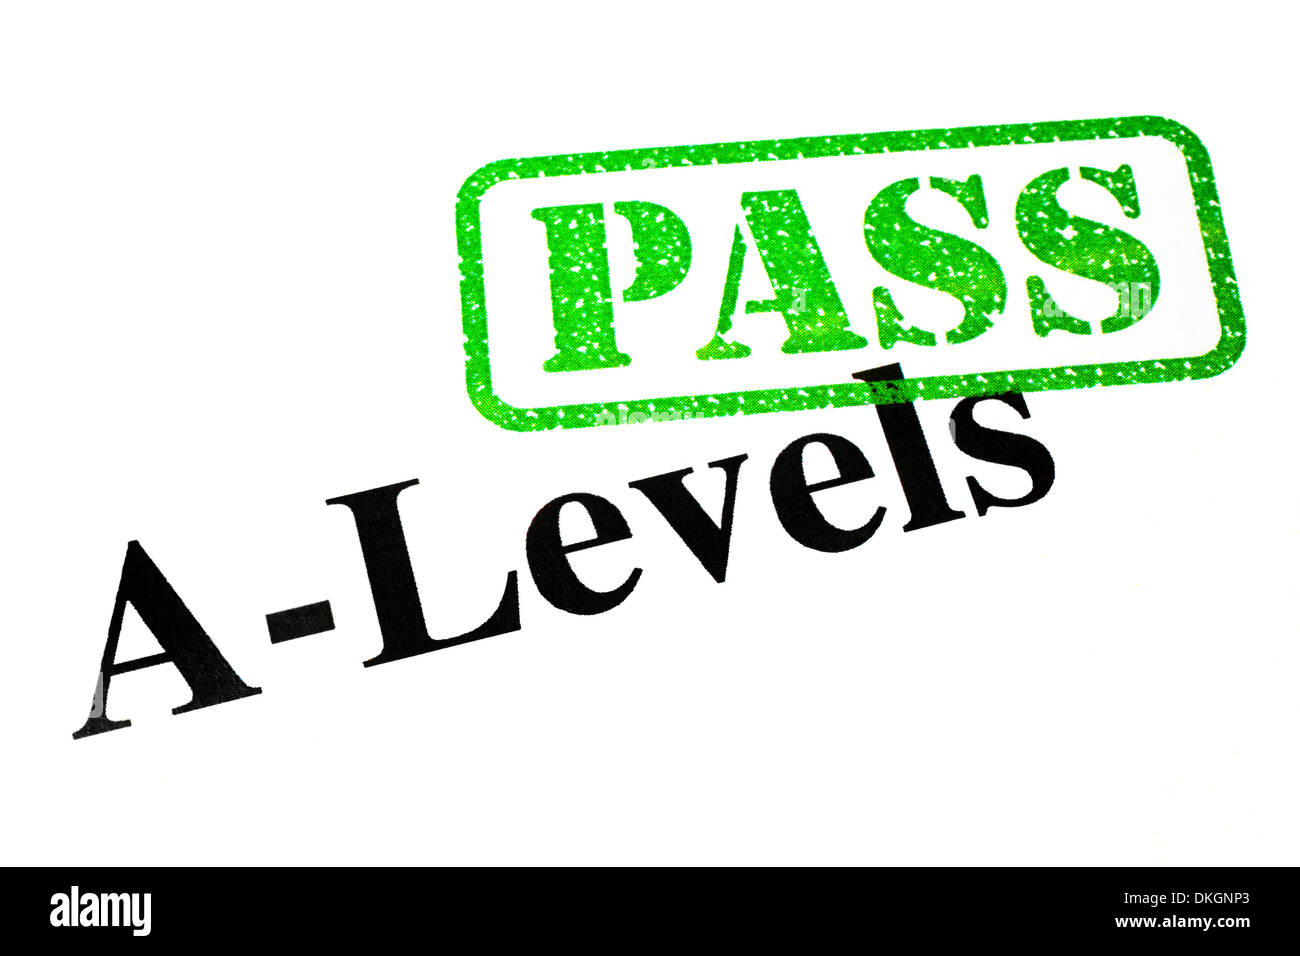 Passed your A-Levels. - Stock Image